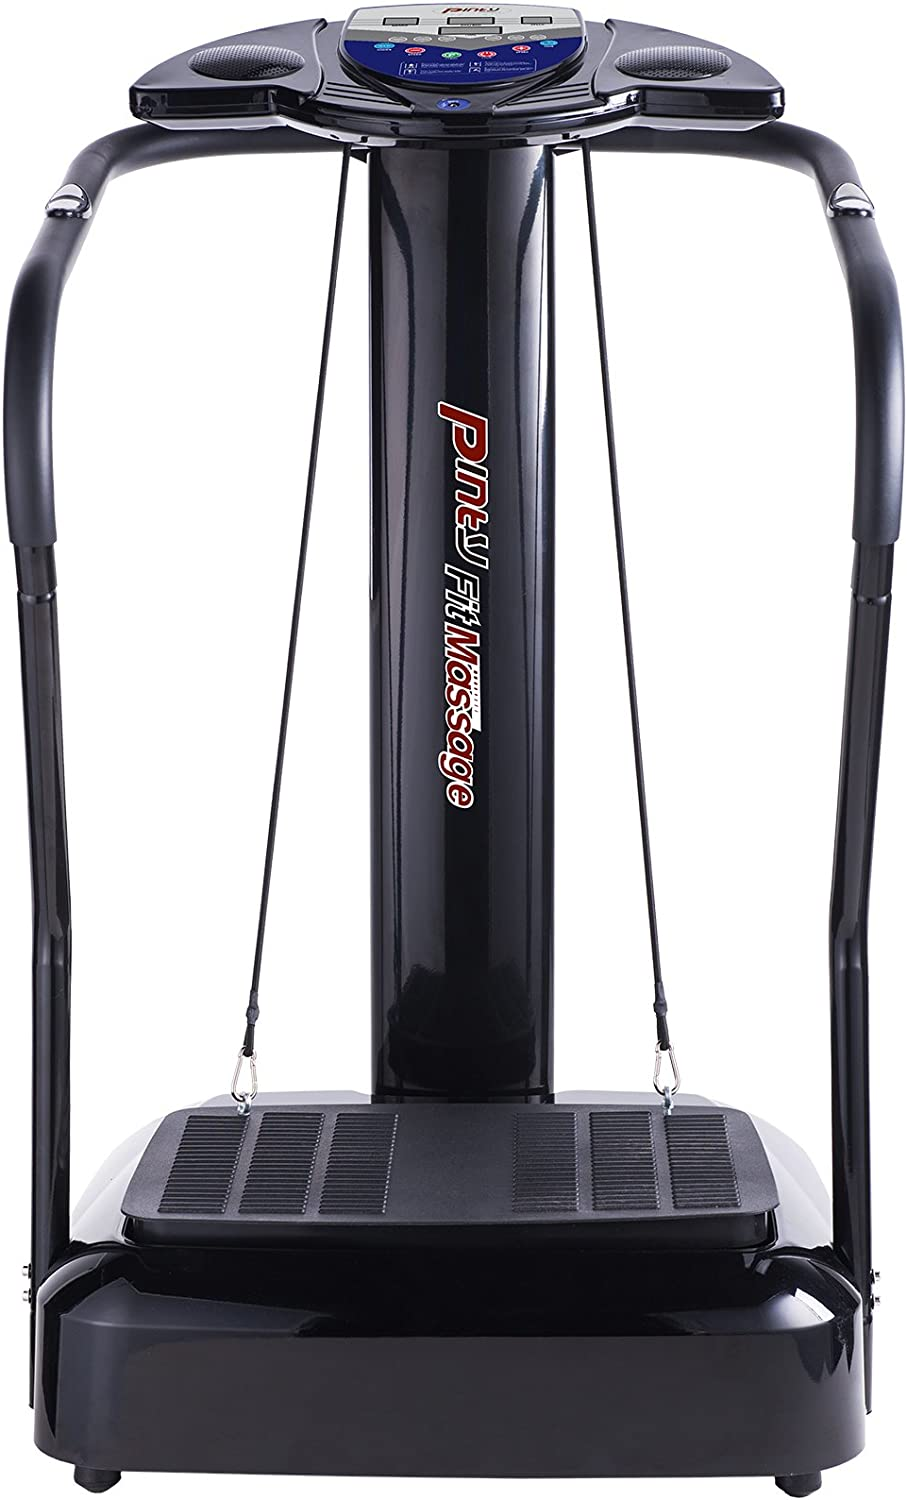 Best Vibration Machine For Weight Loss (2020)